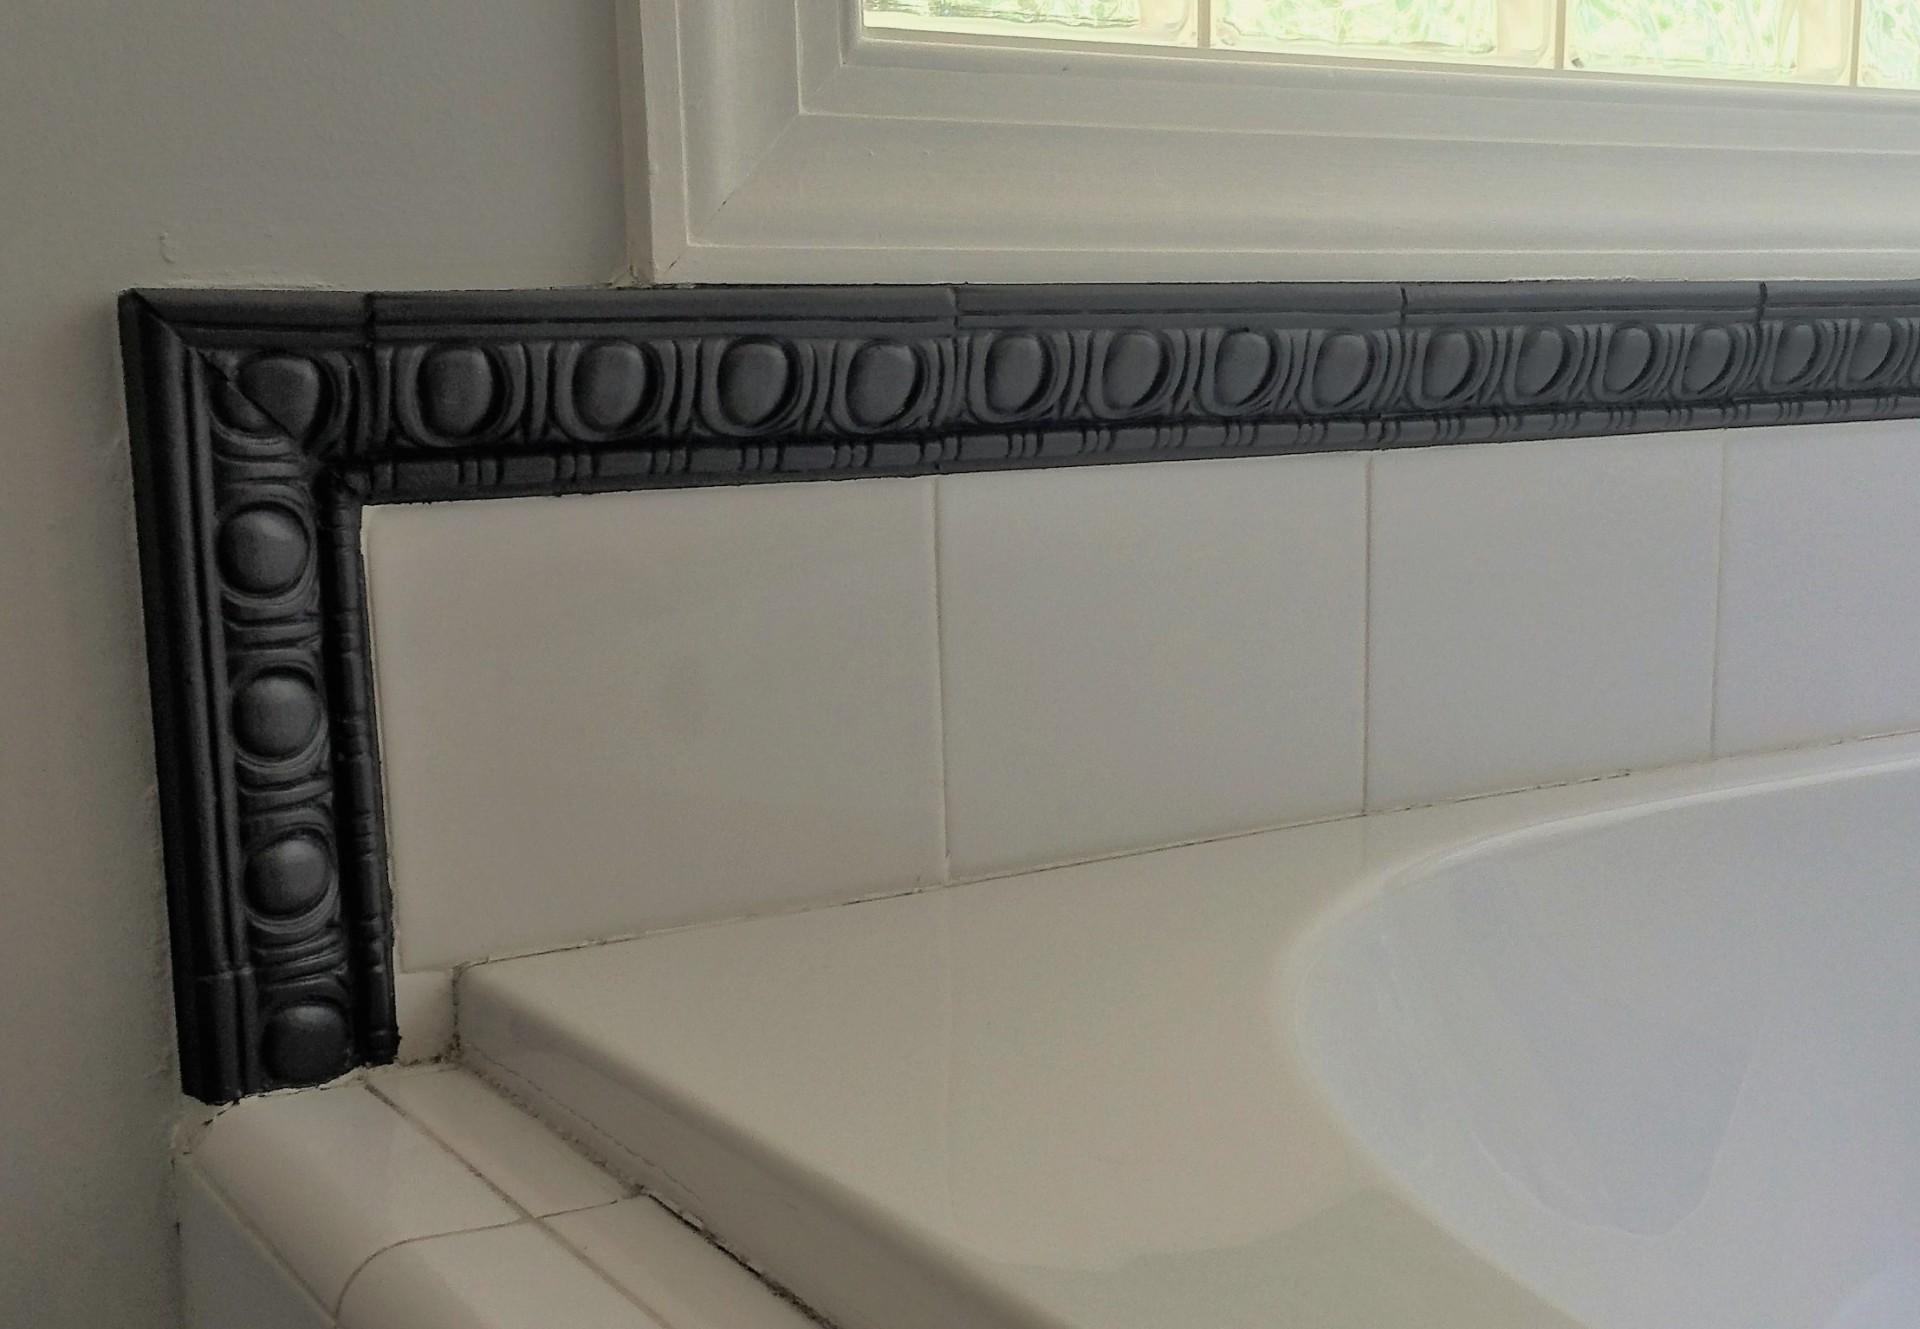 painted pewter beyond garden tub master bathroom accent tile, fabulous finishes by michelle